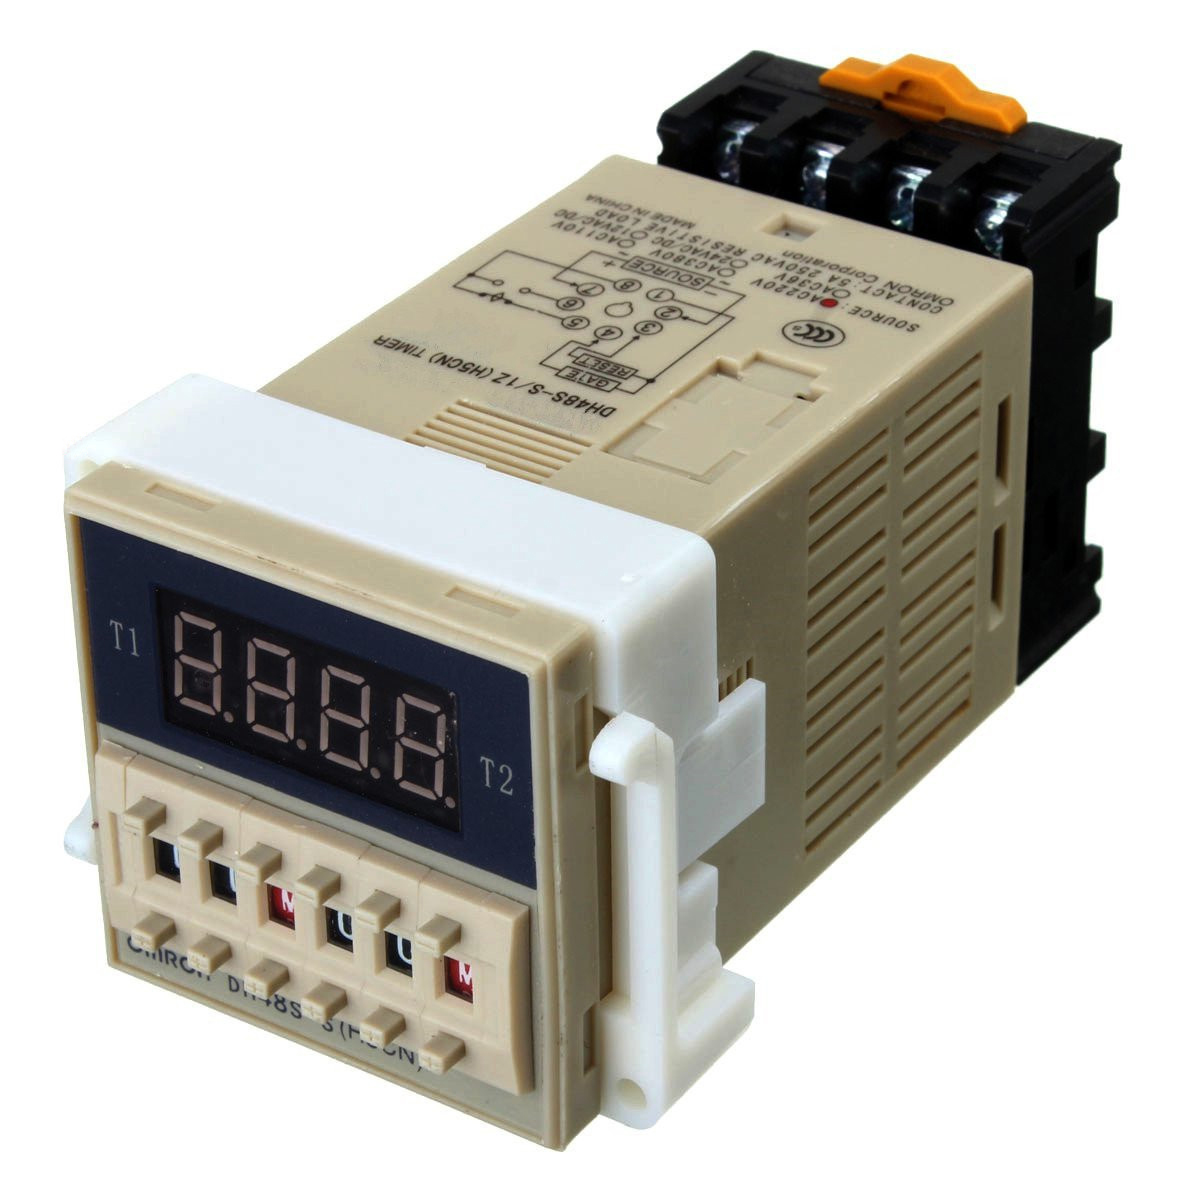 THGS AC 220V 5A Programmable Double Time Timer Delay Relay Device Tool DH48S-S green hill royal cmr 2076 m